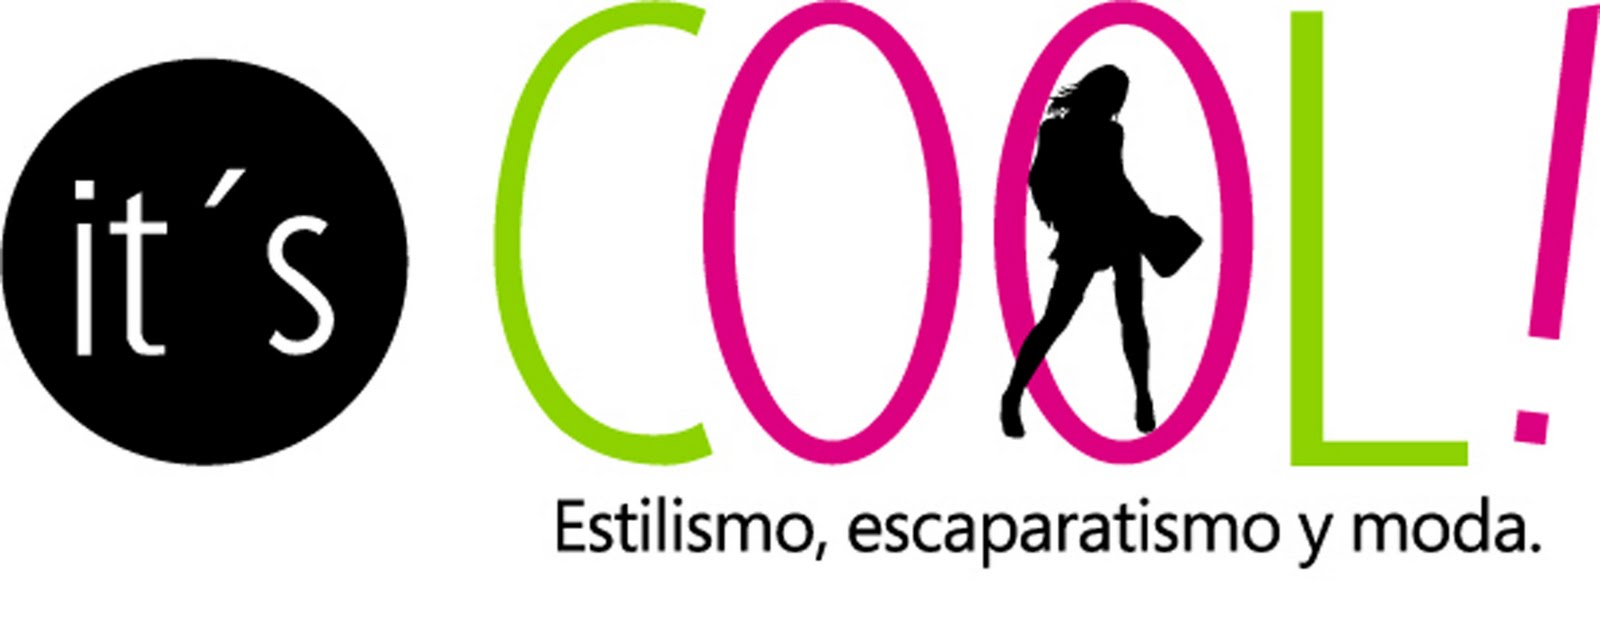 It´s CooL! Estilismo, escaparatismo y moda.